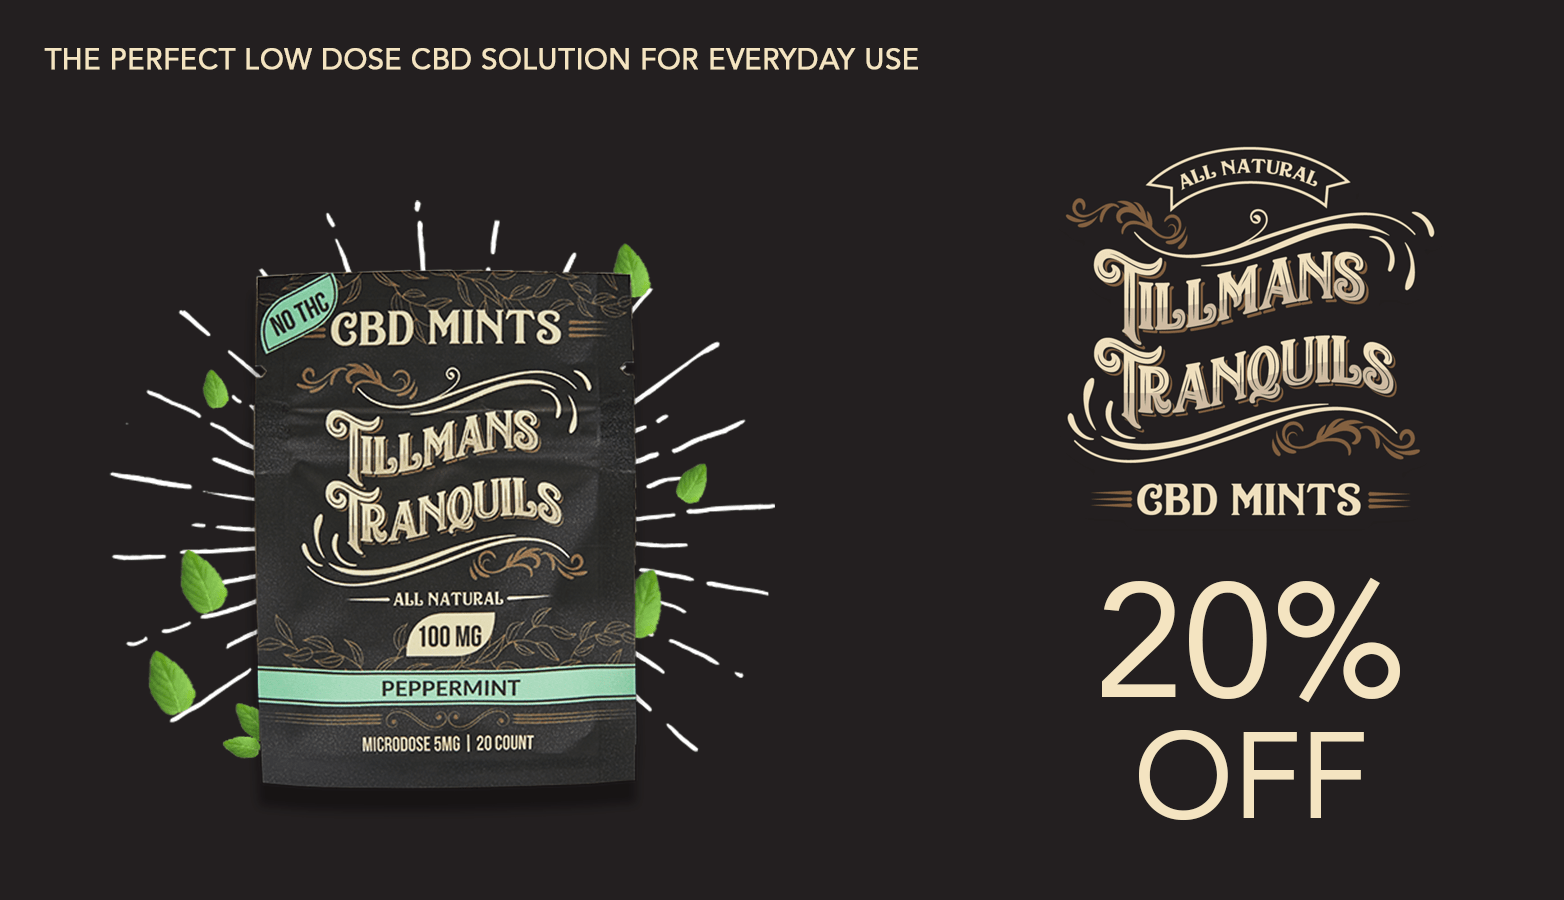 Tillmans Tranquils Coupon Code Offer